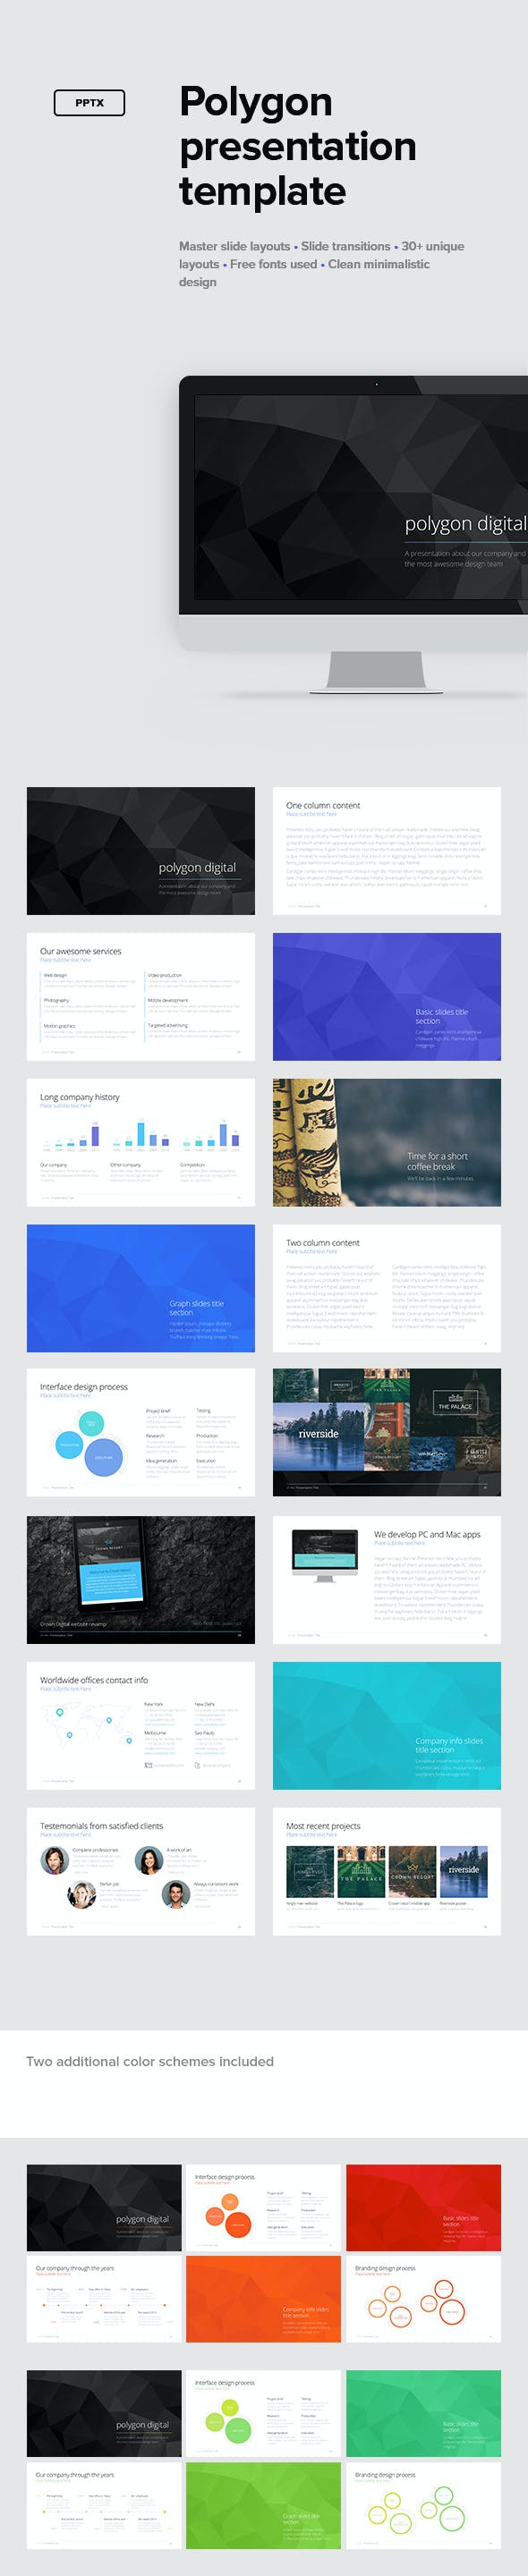 polygon presentation template by erigonn graphicriver